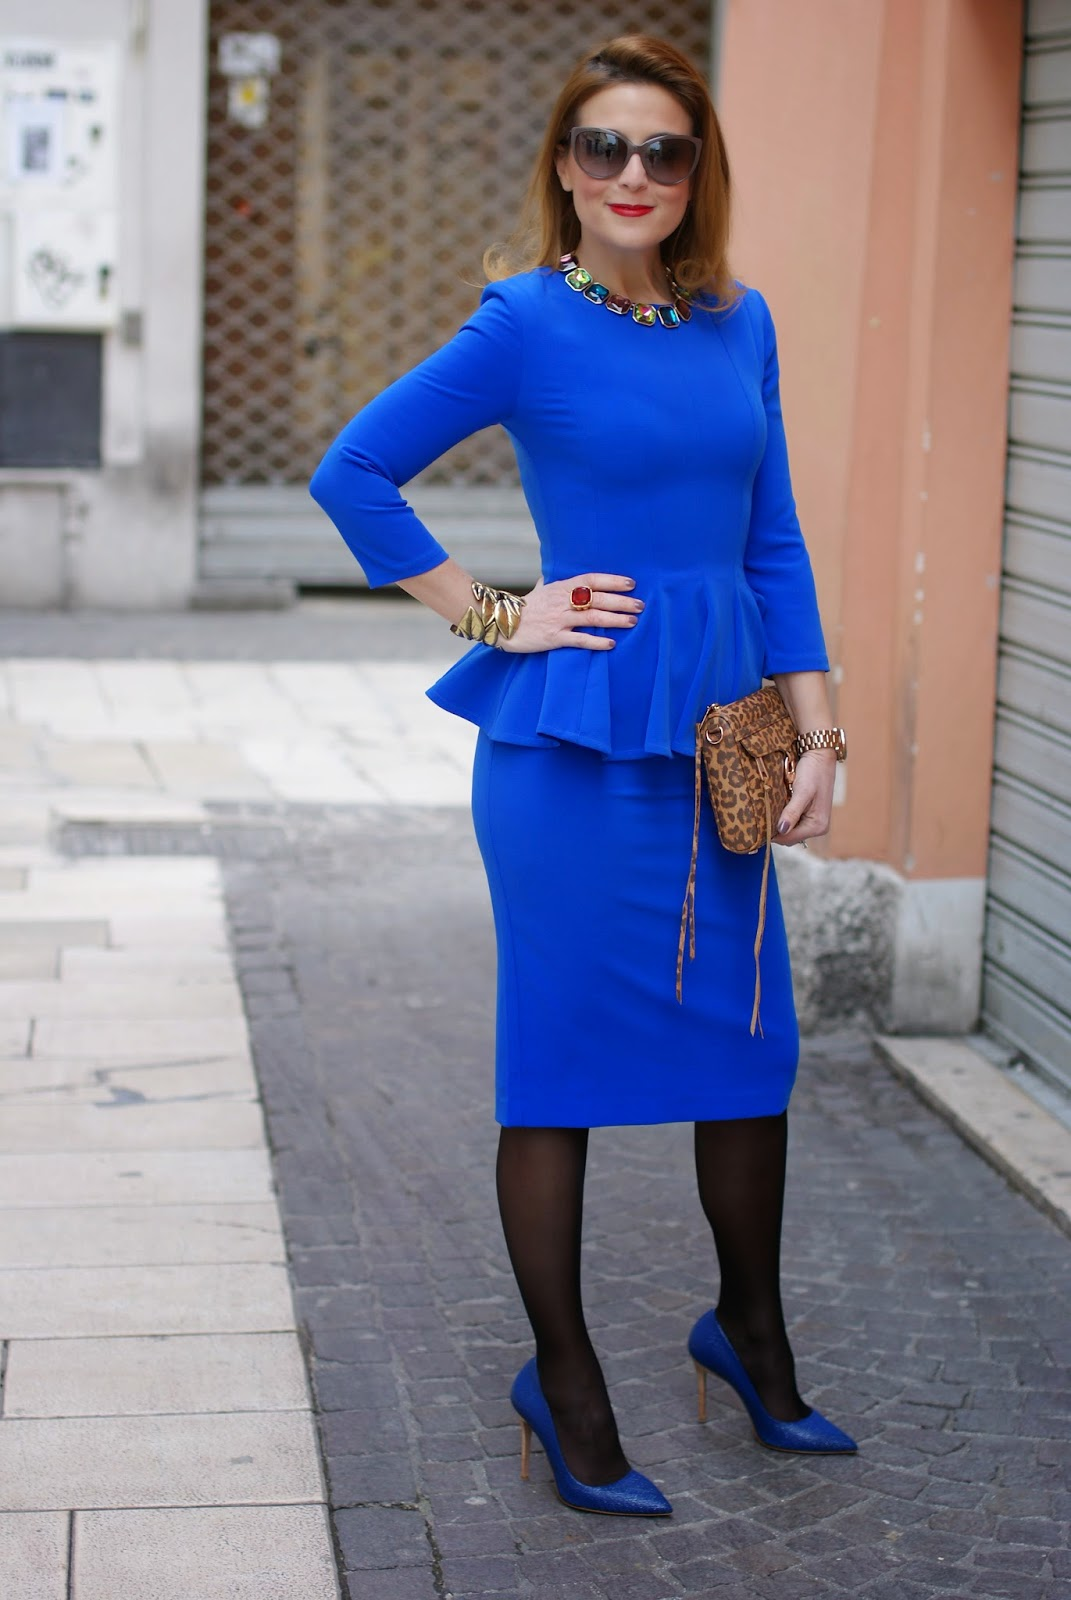 Isabel Garcia peplum dress with midi skirt, sheer tights with heels, Rebecca Minkoff mini MAC clutch in leopard, Fashion and Cookies fashion blog, fashion blogger